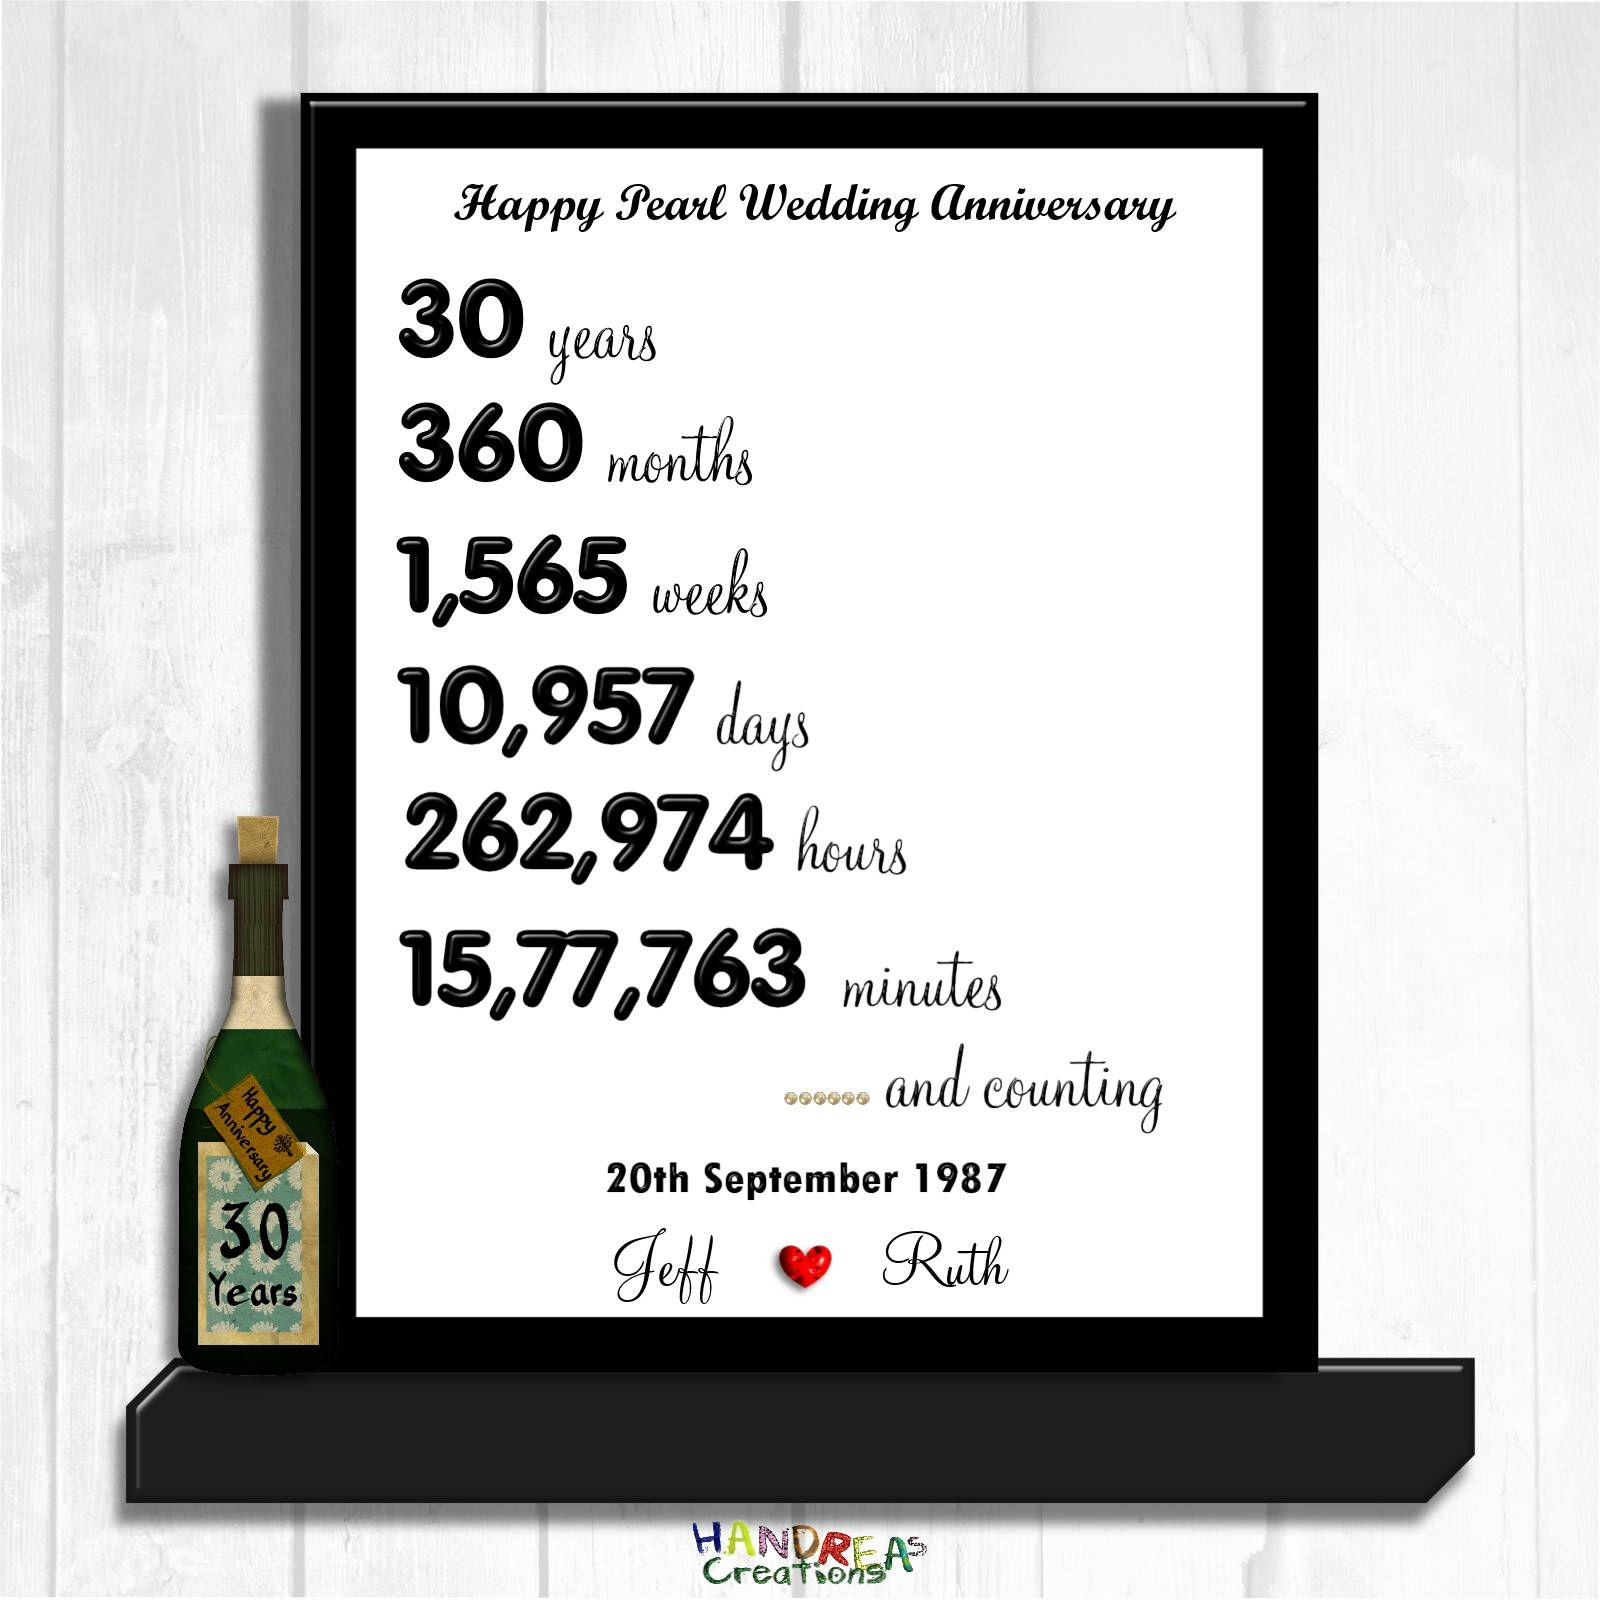 30 years of marriage: what a wedding, what to give to spouses and how to congratulate 28